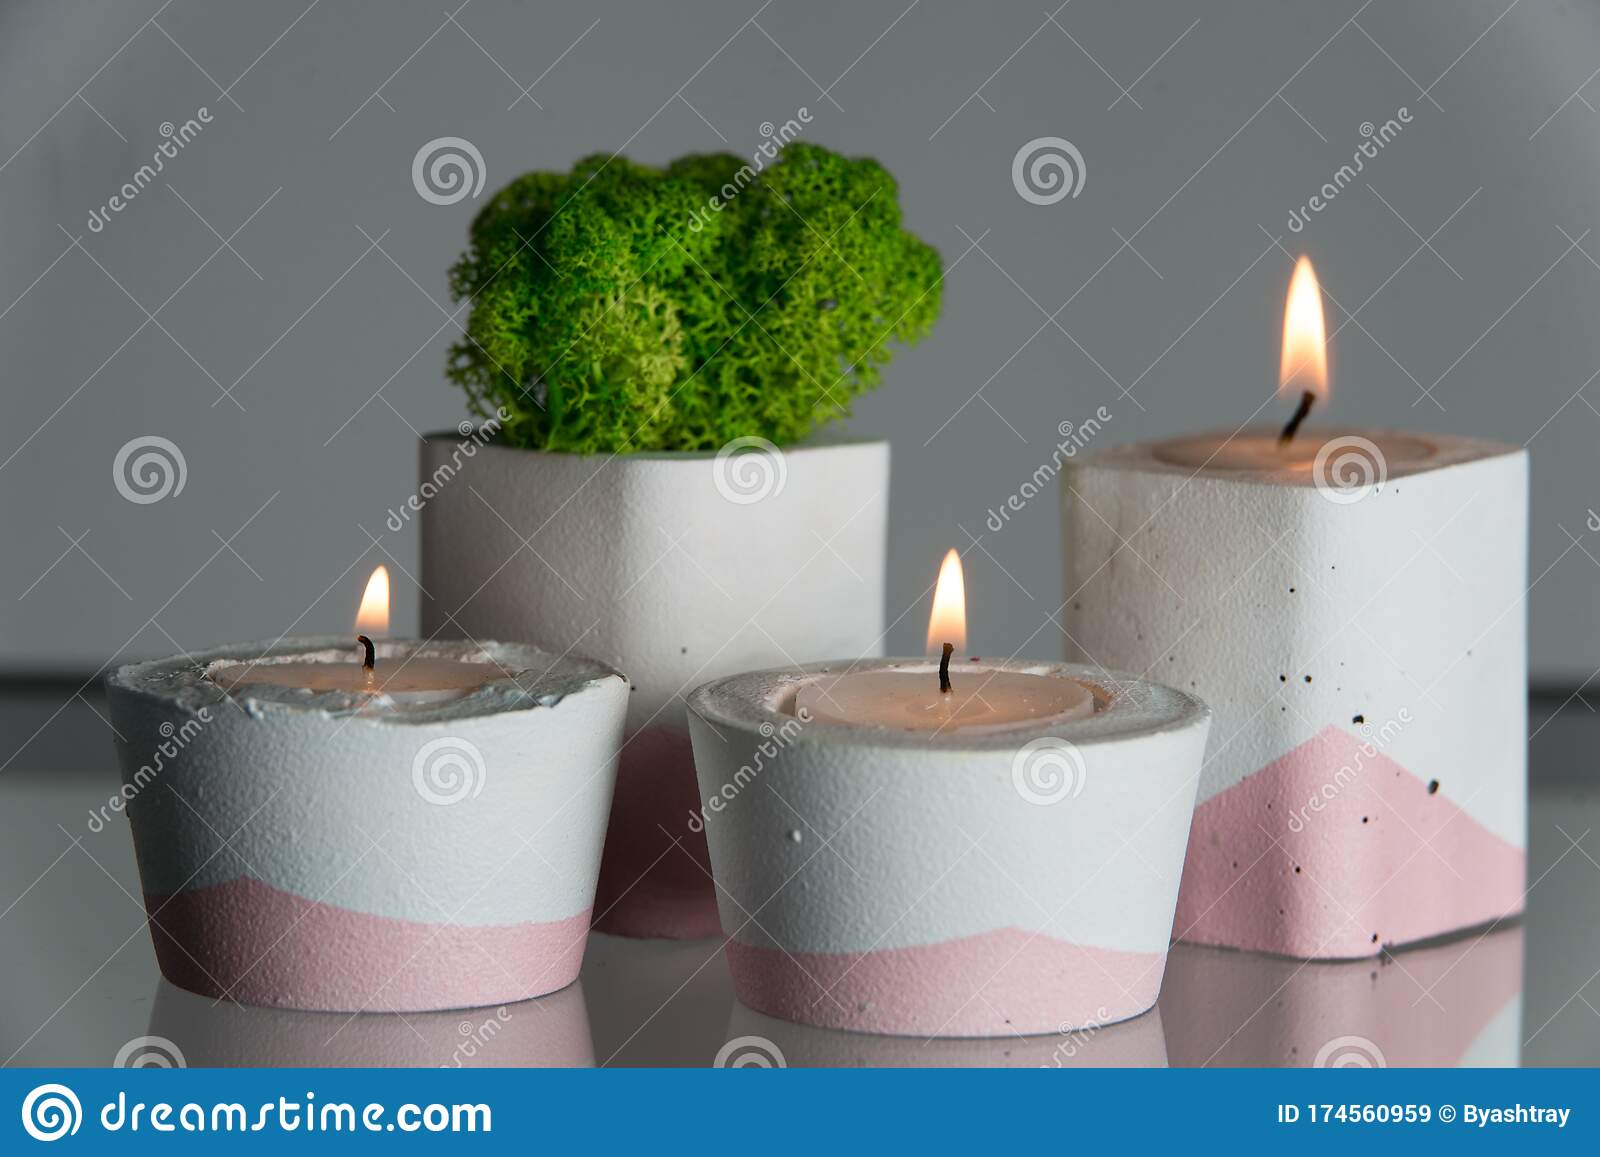 Candles And Moss In White And Pink Concrete Candle Holders Stock Image Image Of Lifestyle Glow 174560959